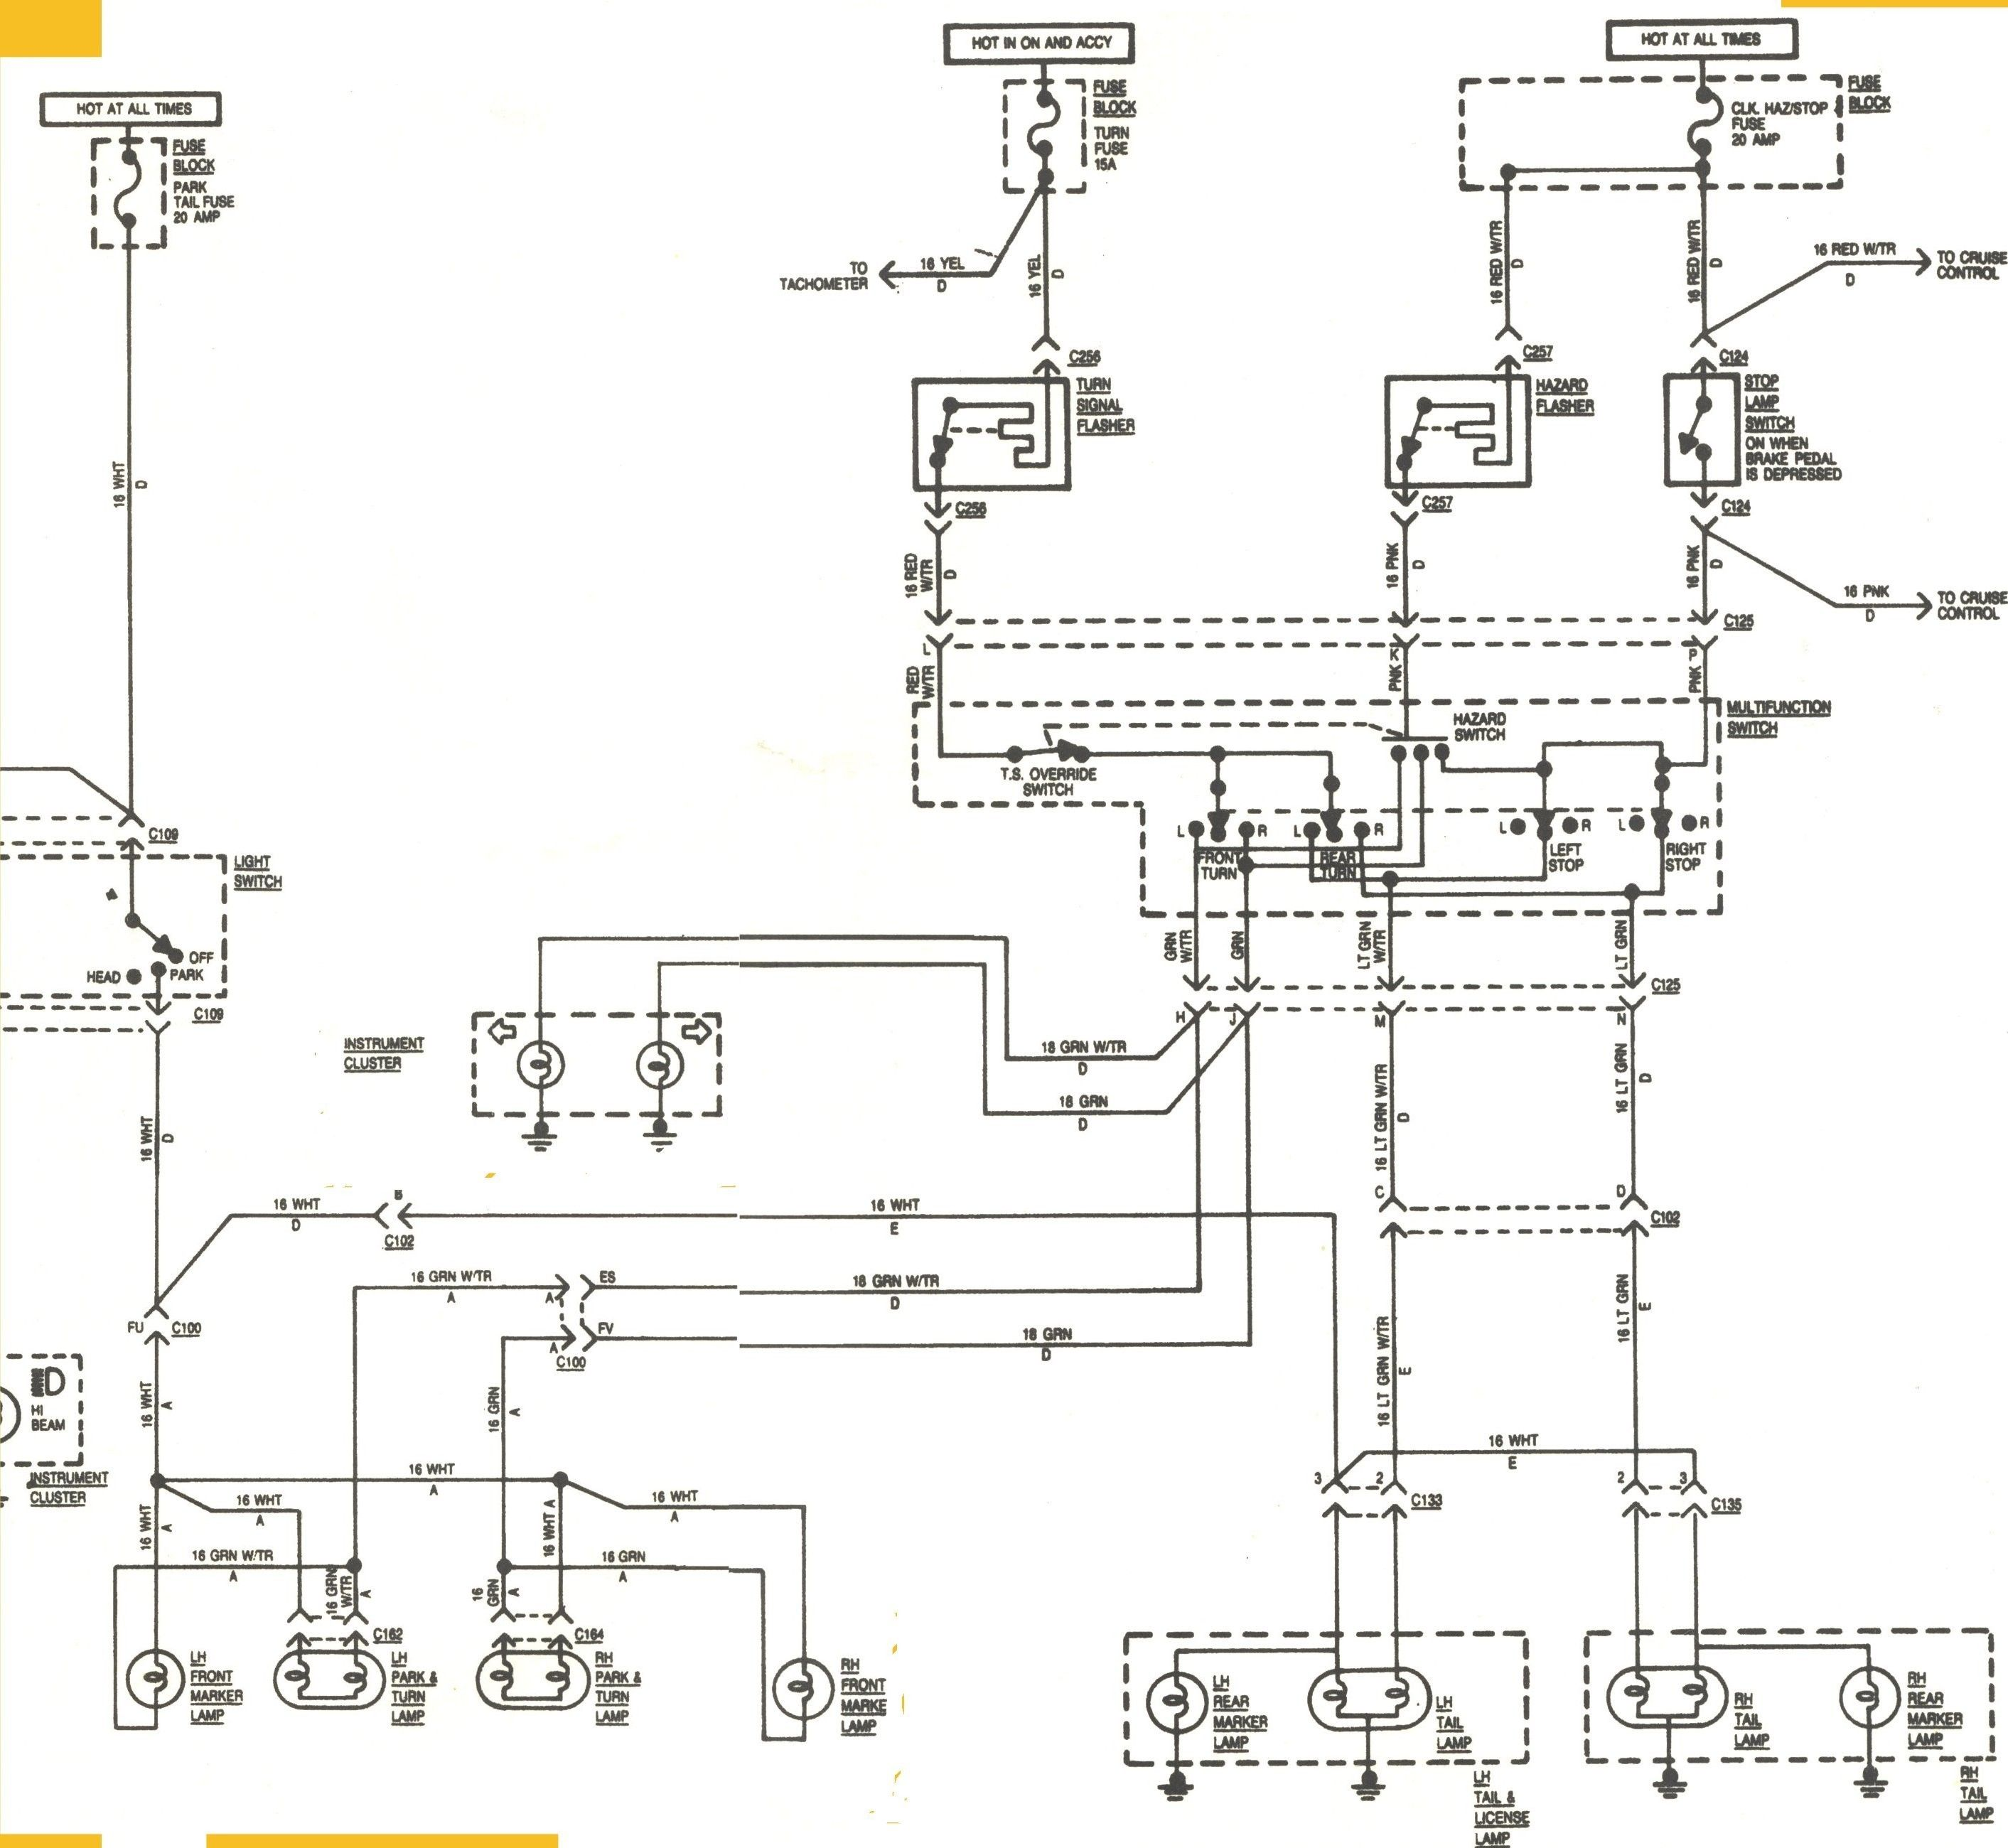 2006 Trailblazer Wiring Diagram from i.pinimg.com